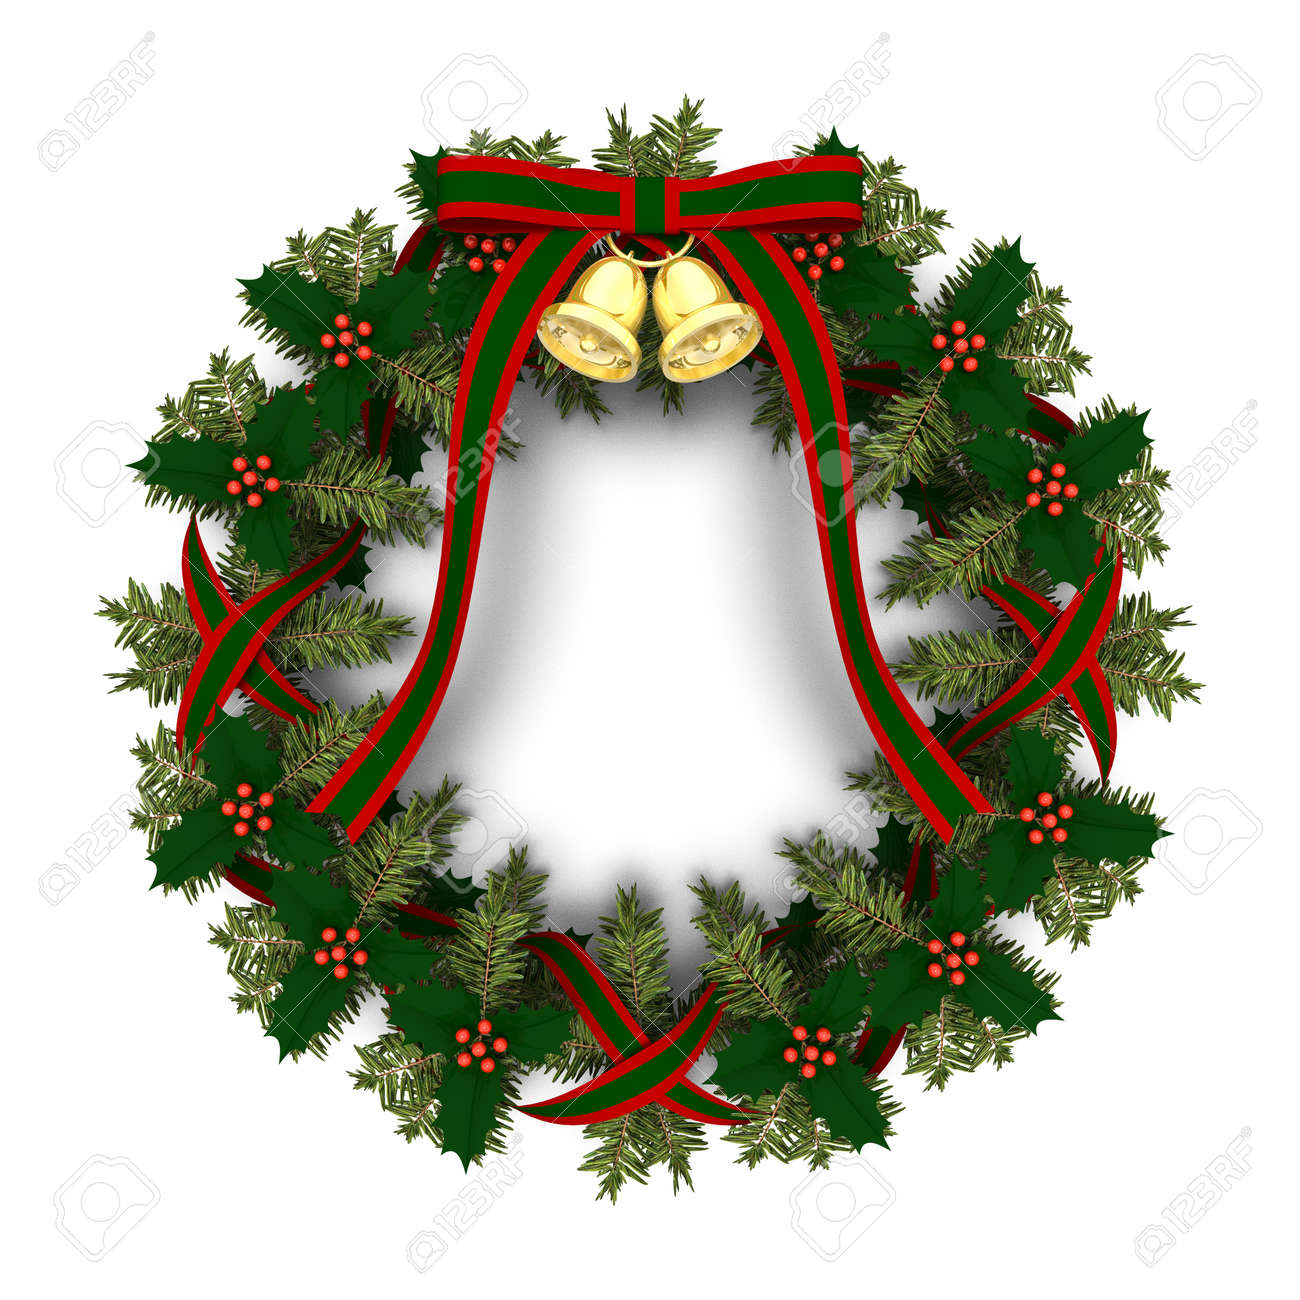 christmas wreath stock photo picture and royalty free image